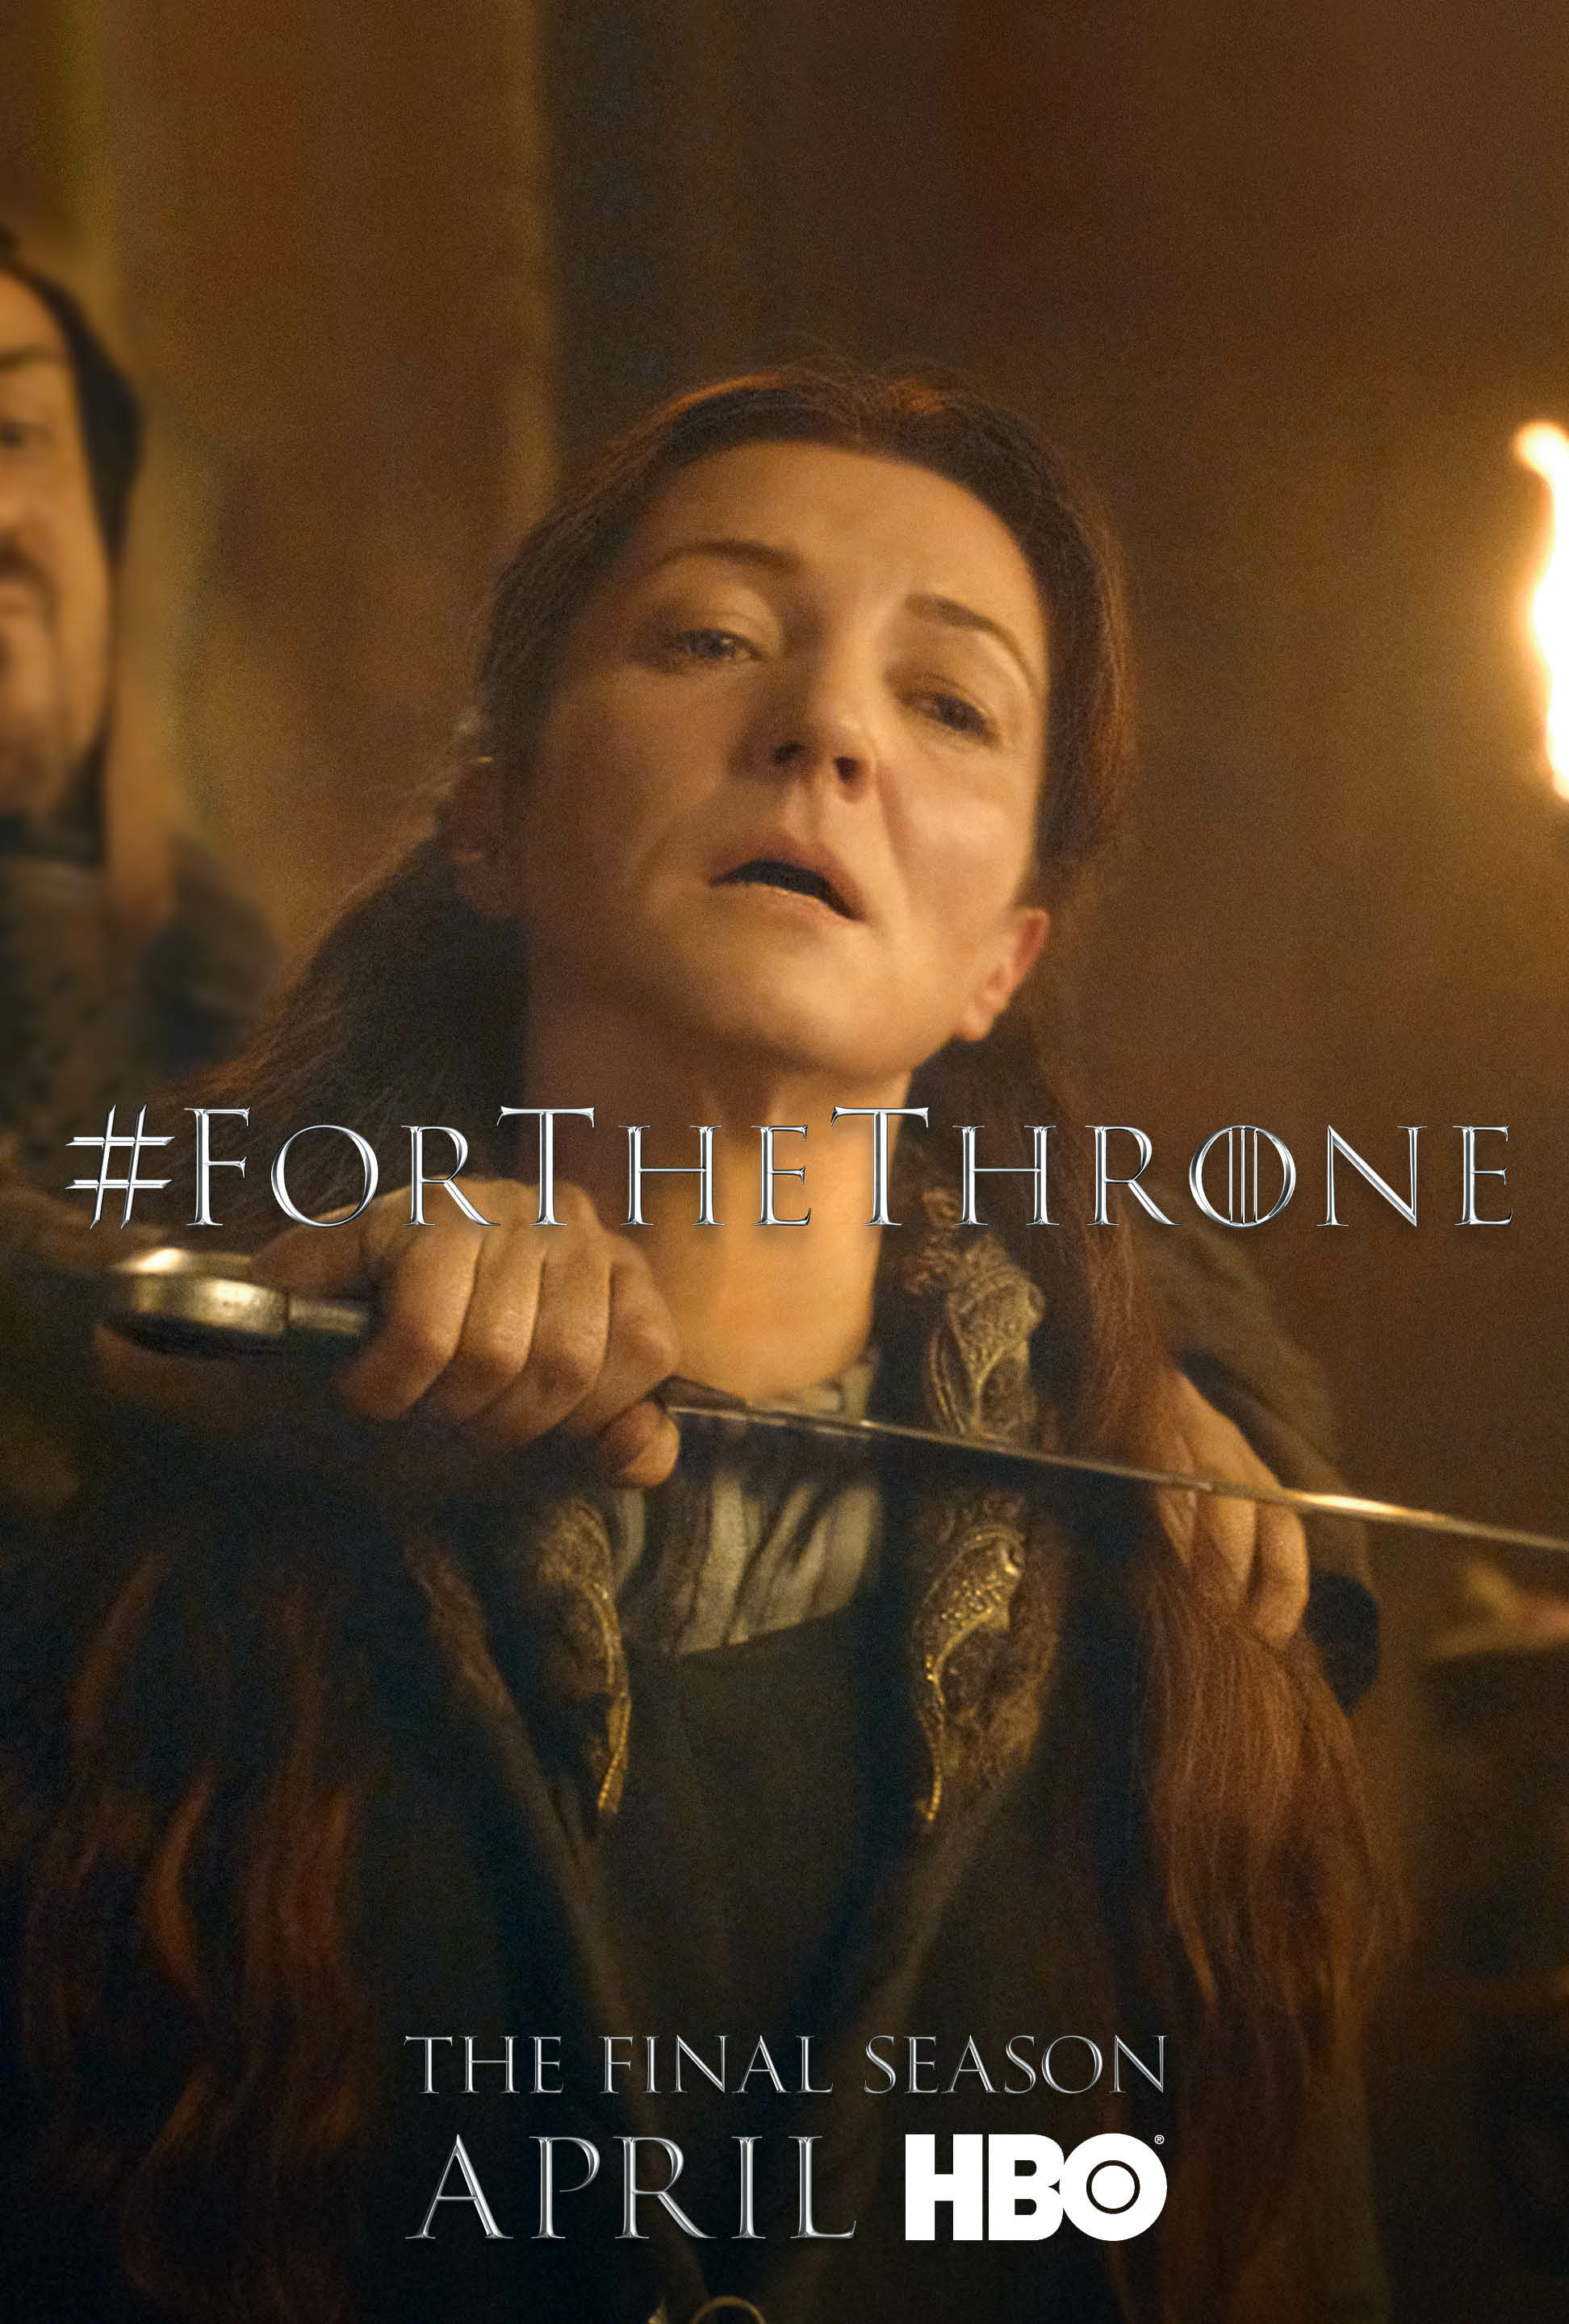 Game of Thrones - 'For the Throne' Poster - Catelyn Stark